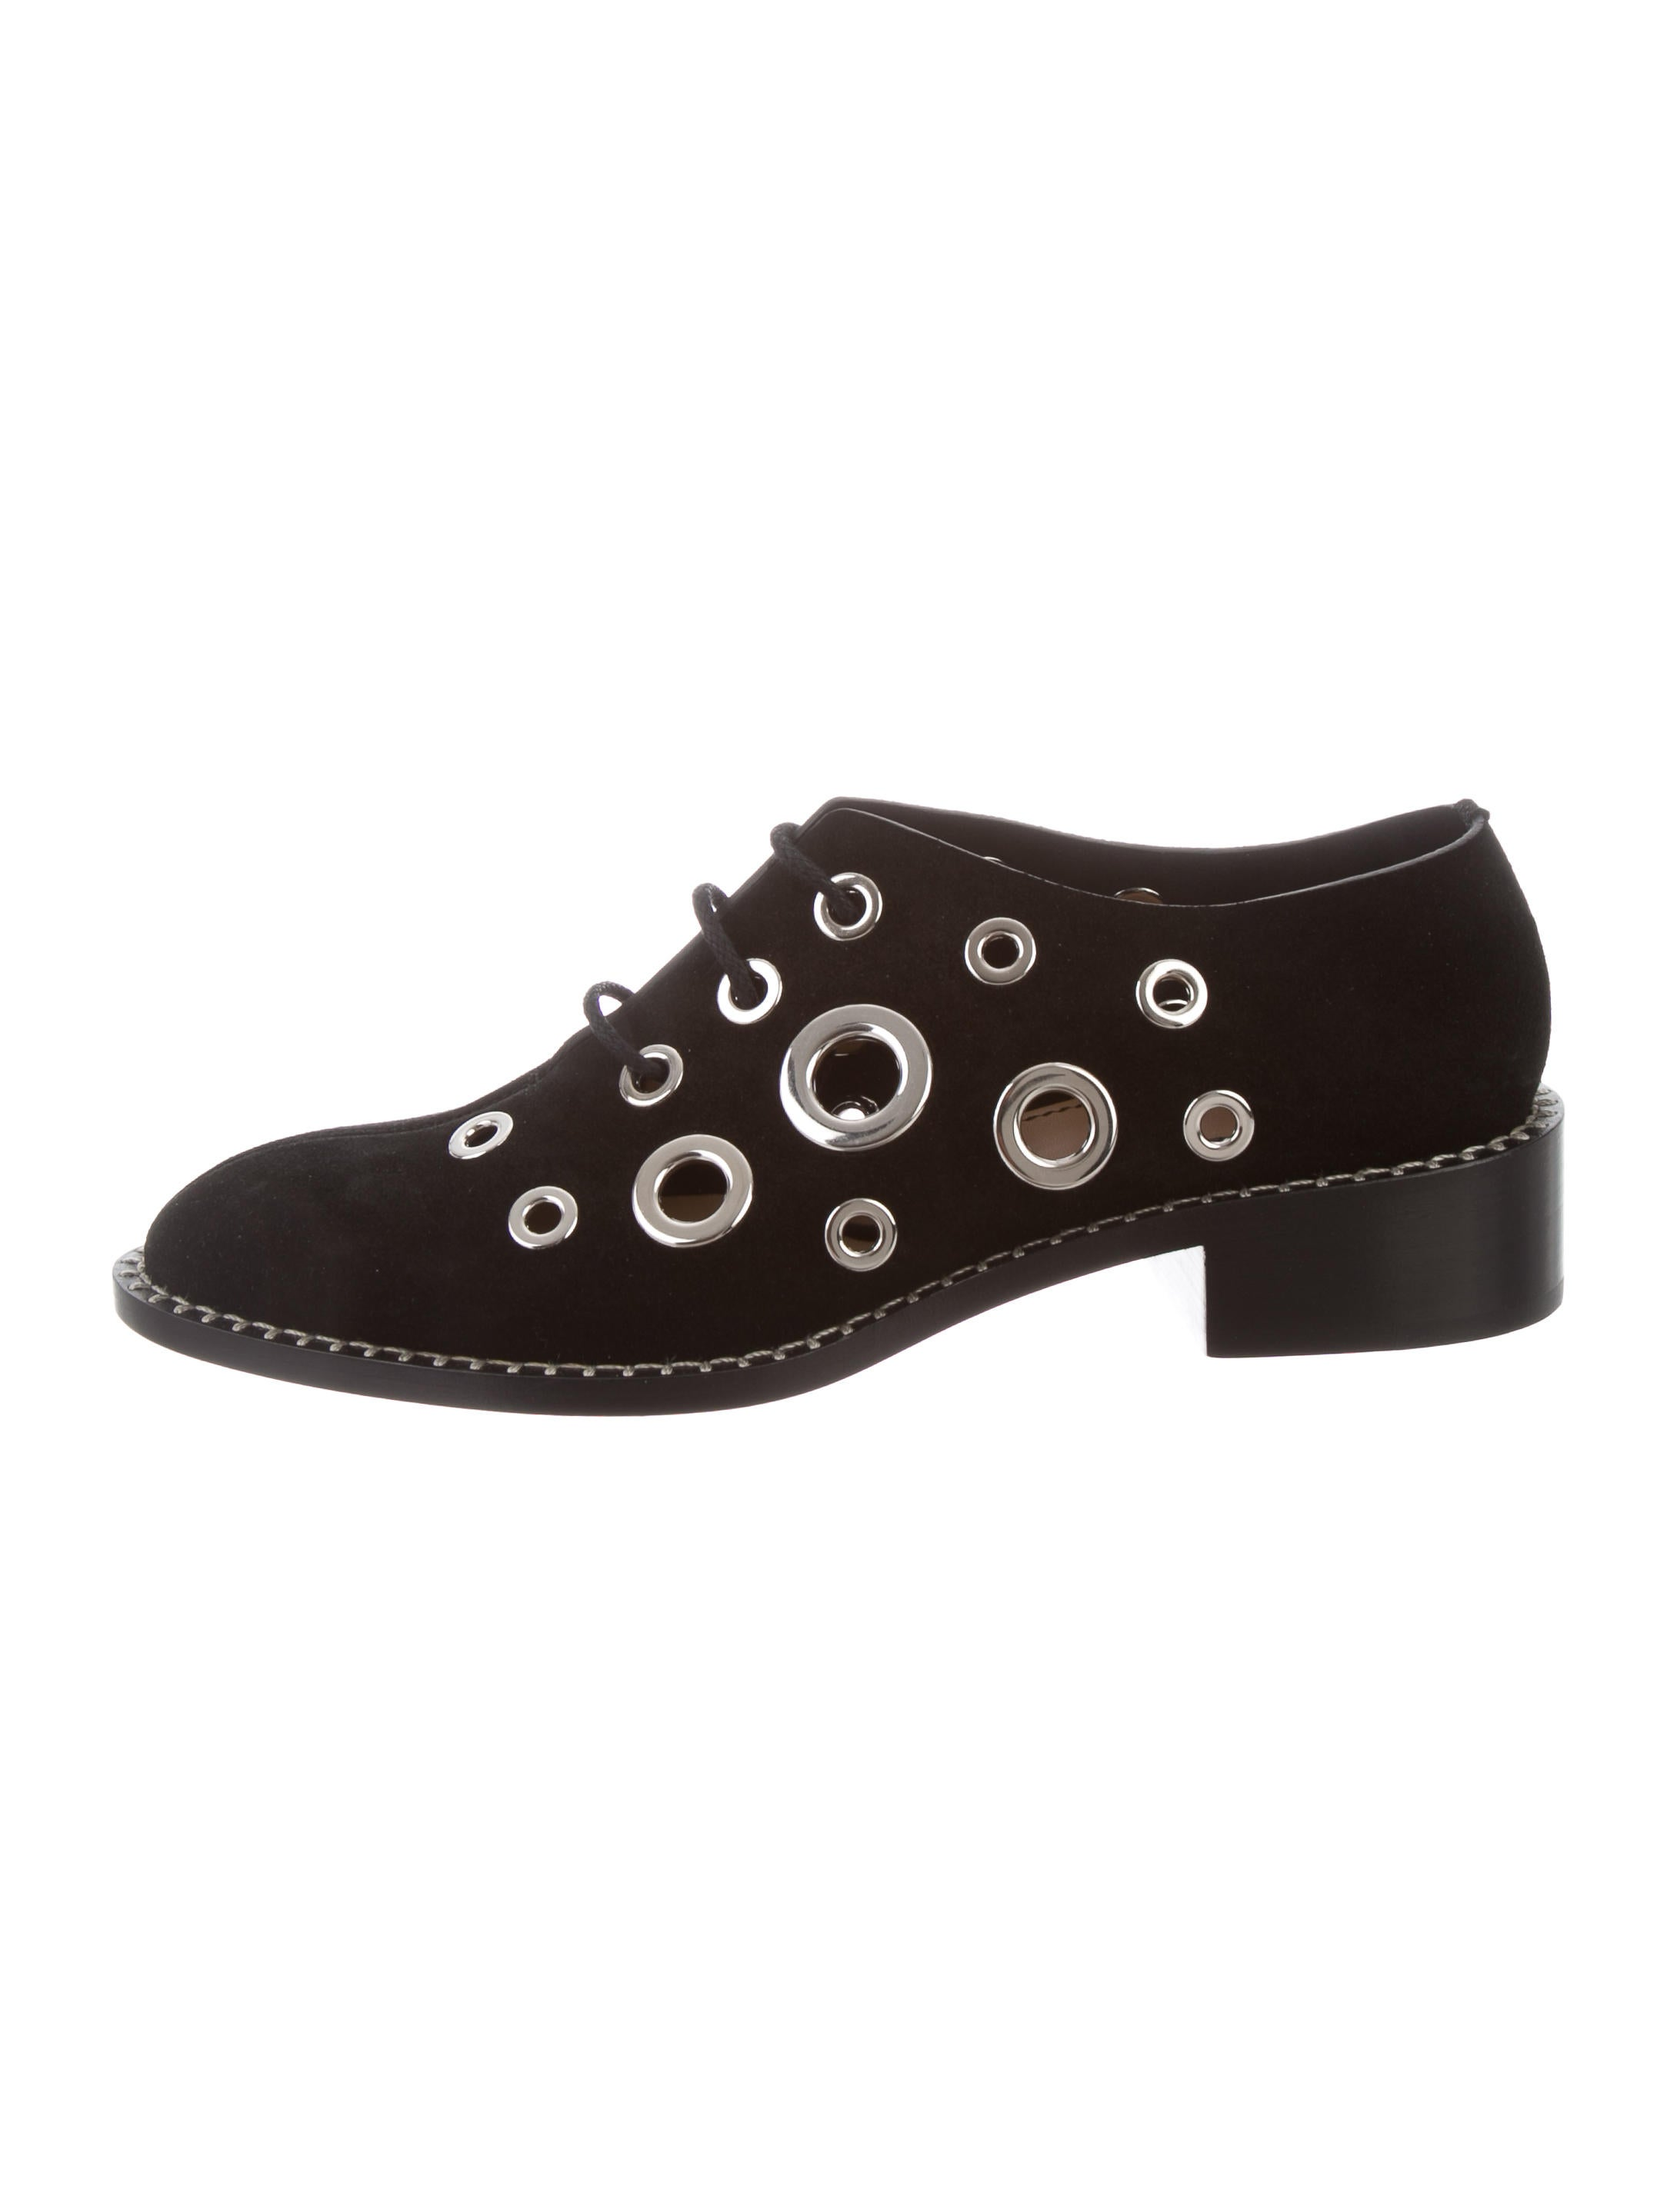 comfortable sale online Proenza Schouler Grommet-Embellished Leather Oxfords best for sale cheap brand new unisex cheap sale choice cheap sale good selling I3Z73mR